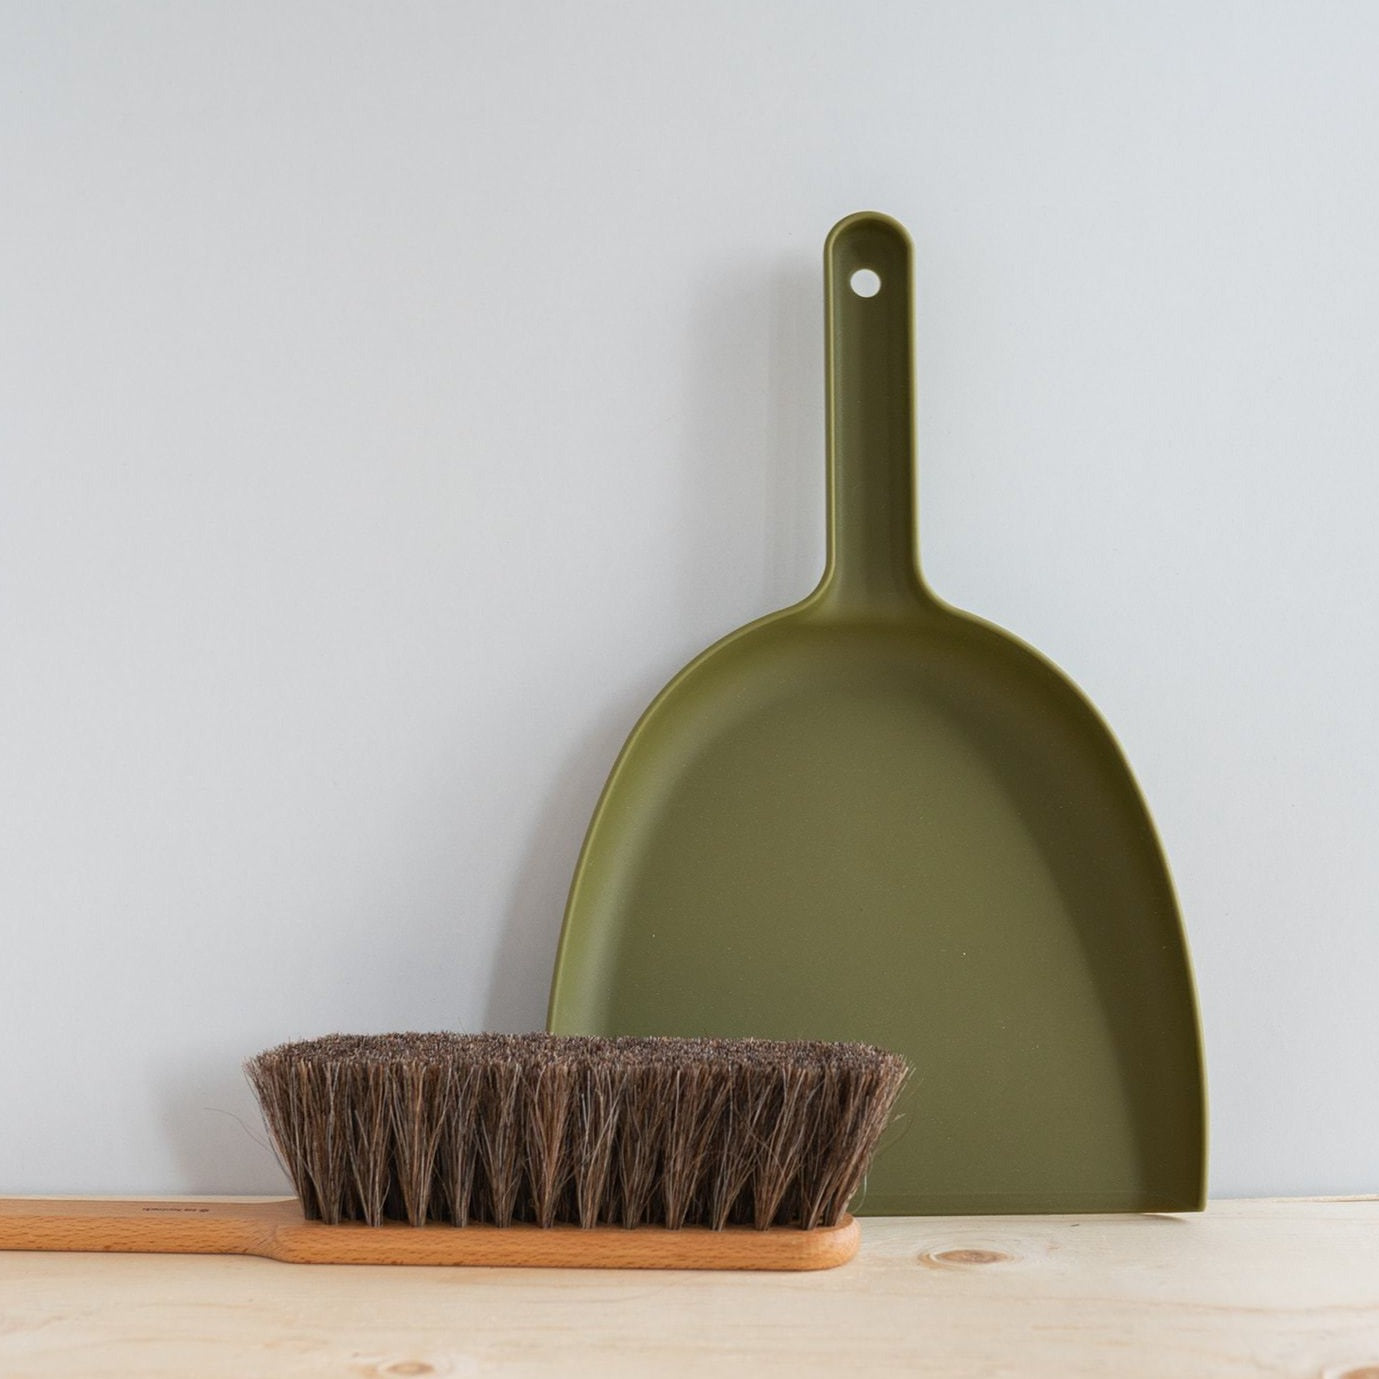 Moss Green Brush & Dust Pan